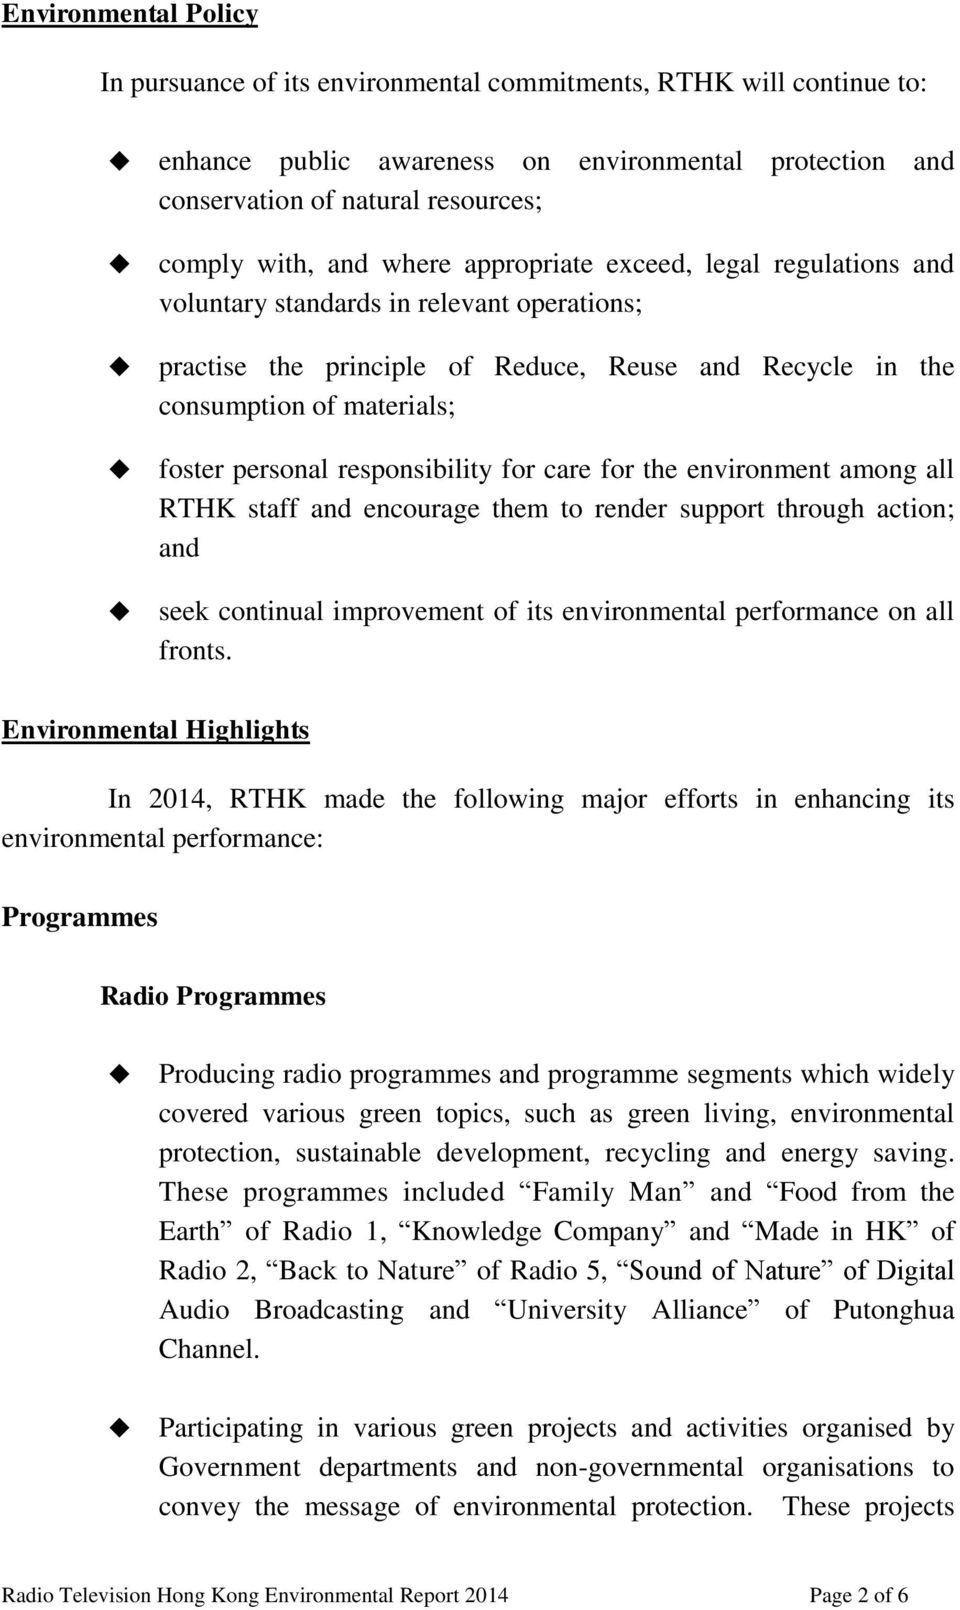 responsibility for care for the environment among all RTHK staff and encourage them to render support through action; and seek continual improvement of its environmental performance on all fronts.